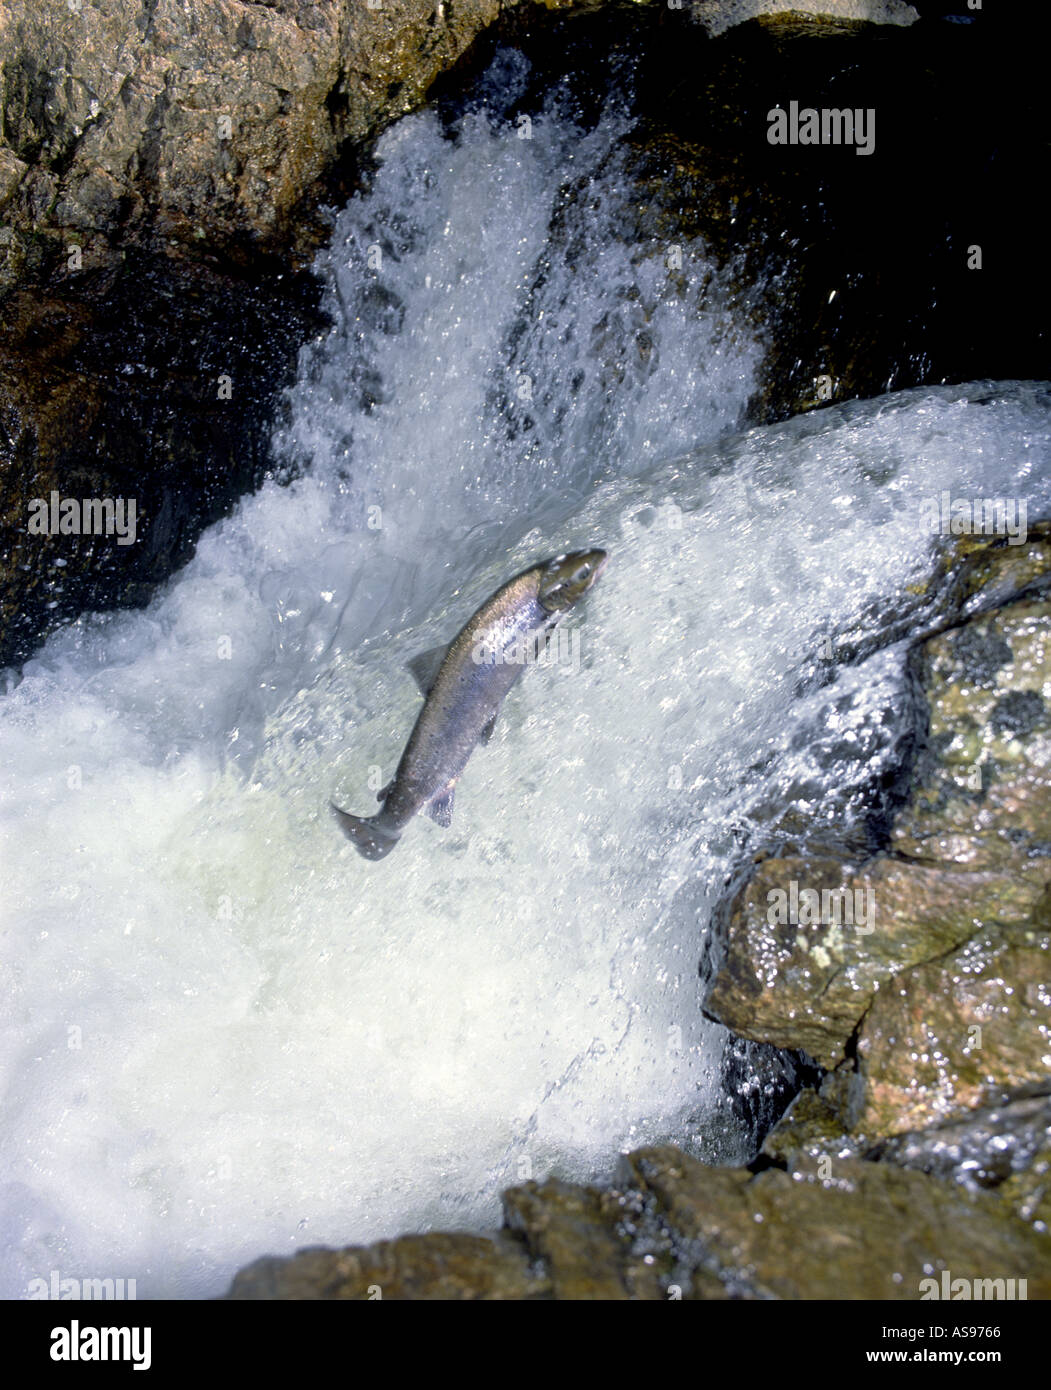 Leaping Salmon Salmo Salar upstream on its on it River migration    GFIM 1012 - Stock Image